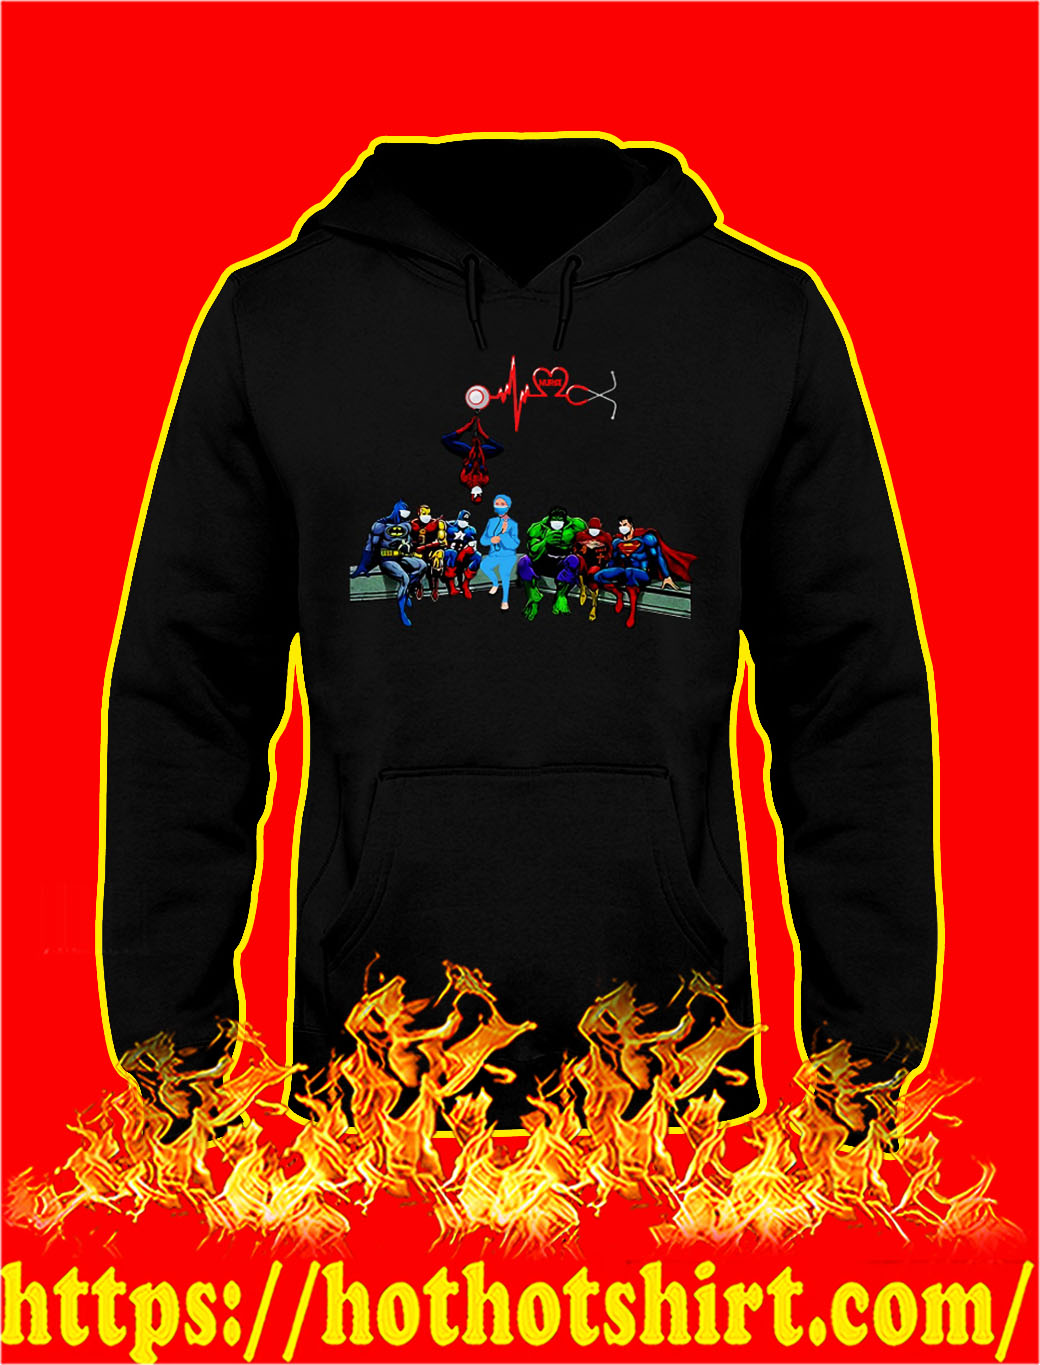 Nurse and super heroes heartbeat hoodie